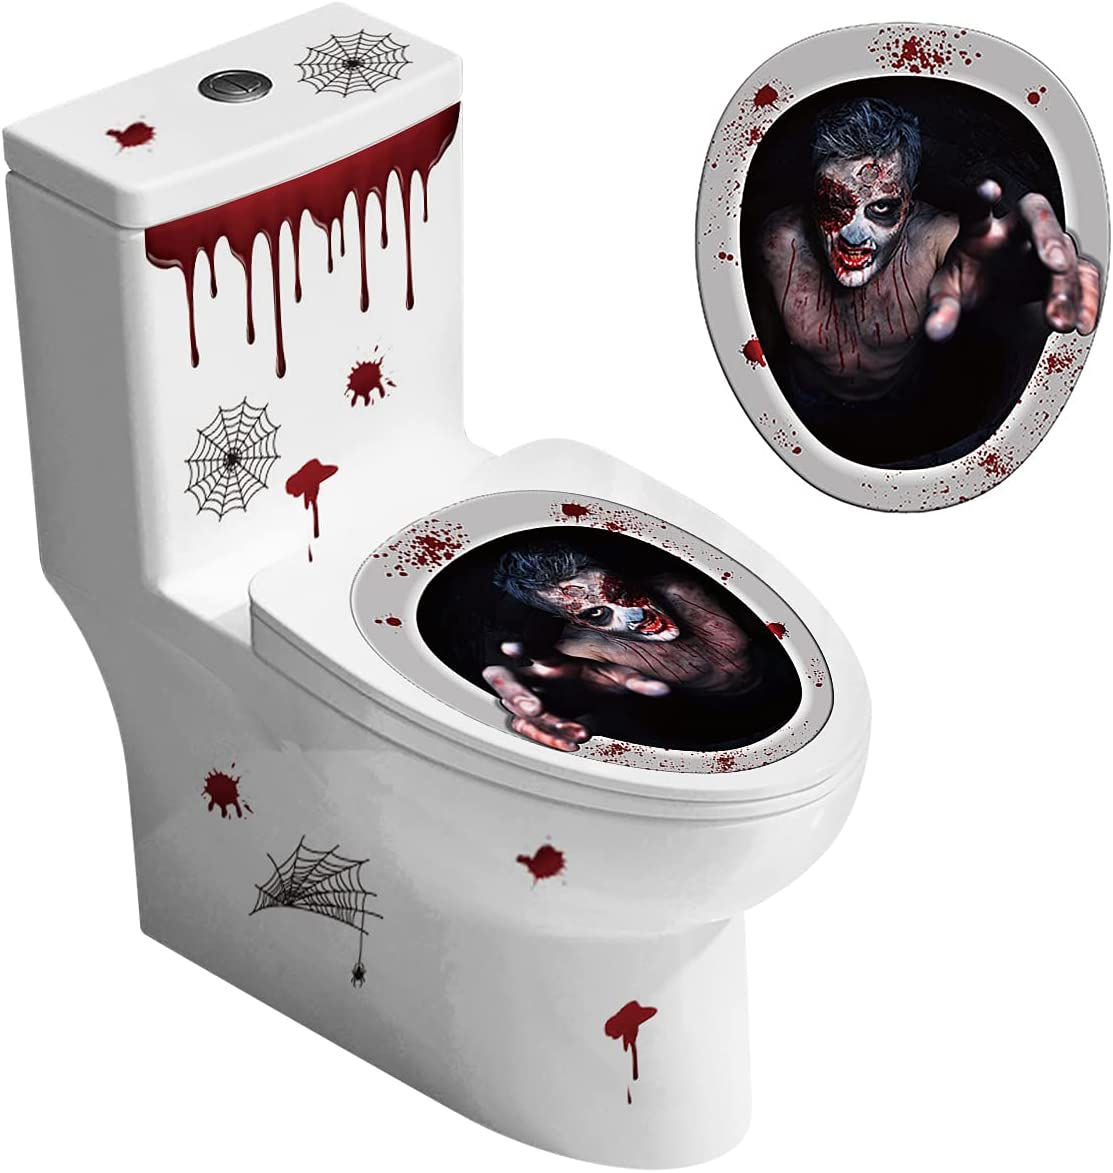 2 Pieces Halloween Toilet Lid Decals 3D Horror Toilet Decoration, Bloody Terror Dripping Blood Toilet Topper DIY Self-Adhesive Wall Cling Stickers Halloween Party Decor (Midnight Calling Back)